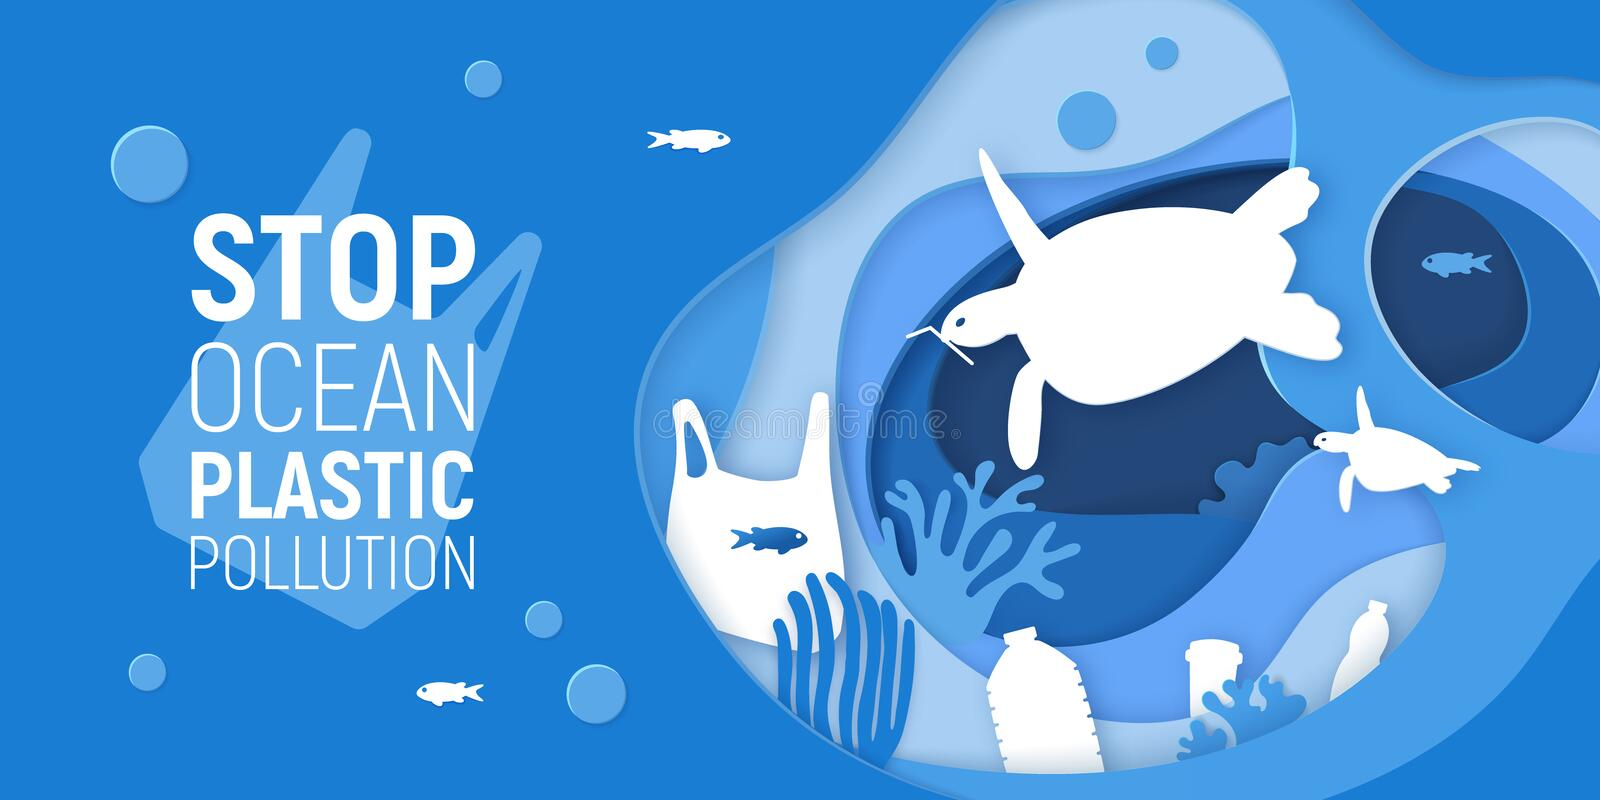 Concept of Stop Ocean Plastic Pollution. Paper cut underwater background with plastic rubbish, turtles and coral reefs stock illustration